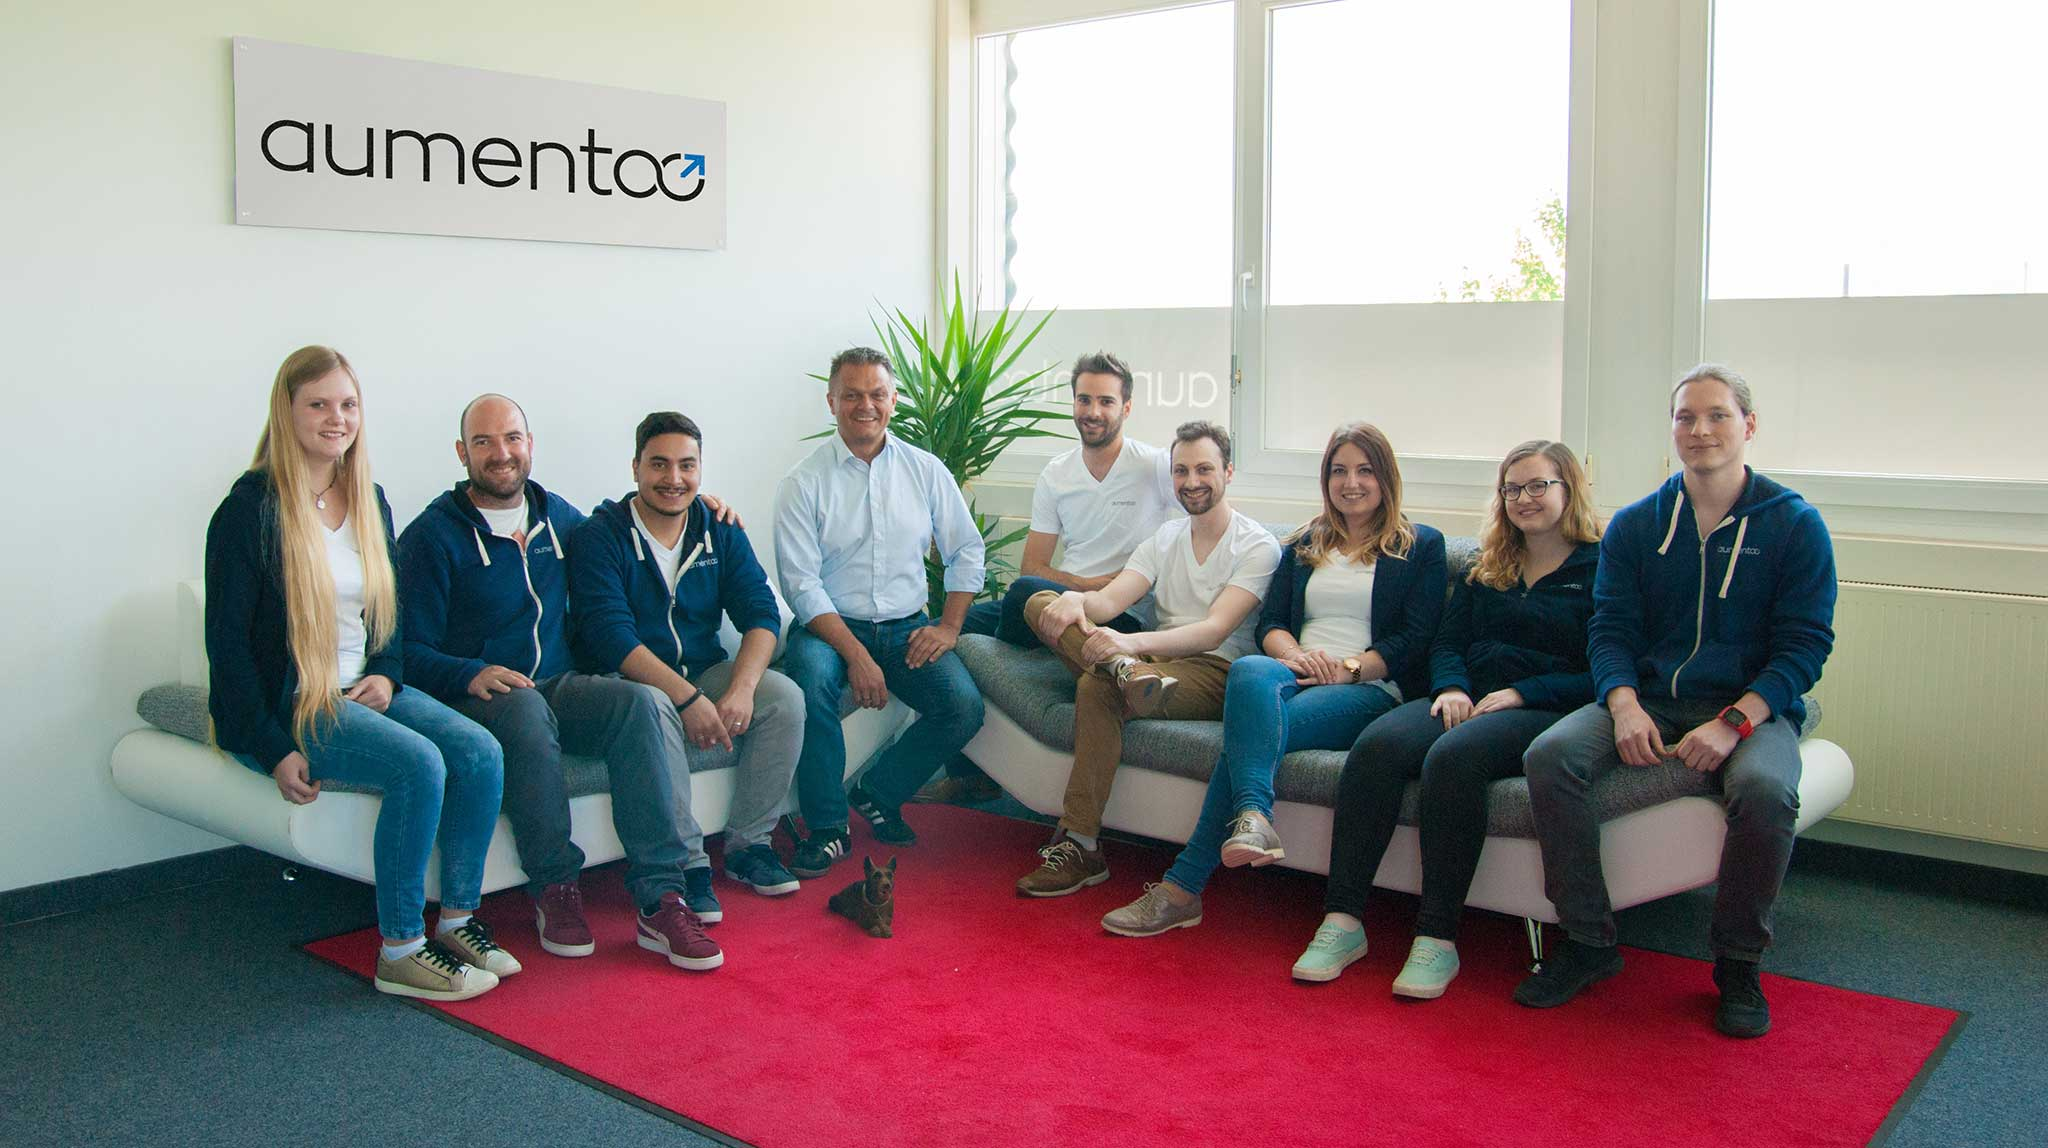 one of the first aumentoo team pictures for the about page